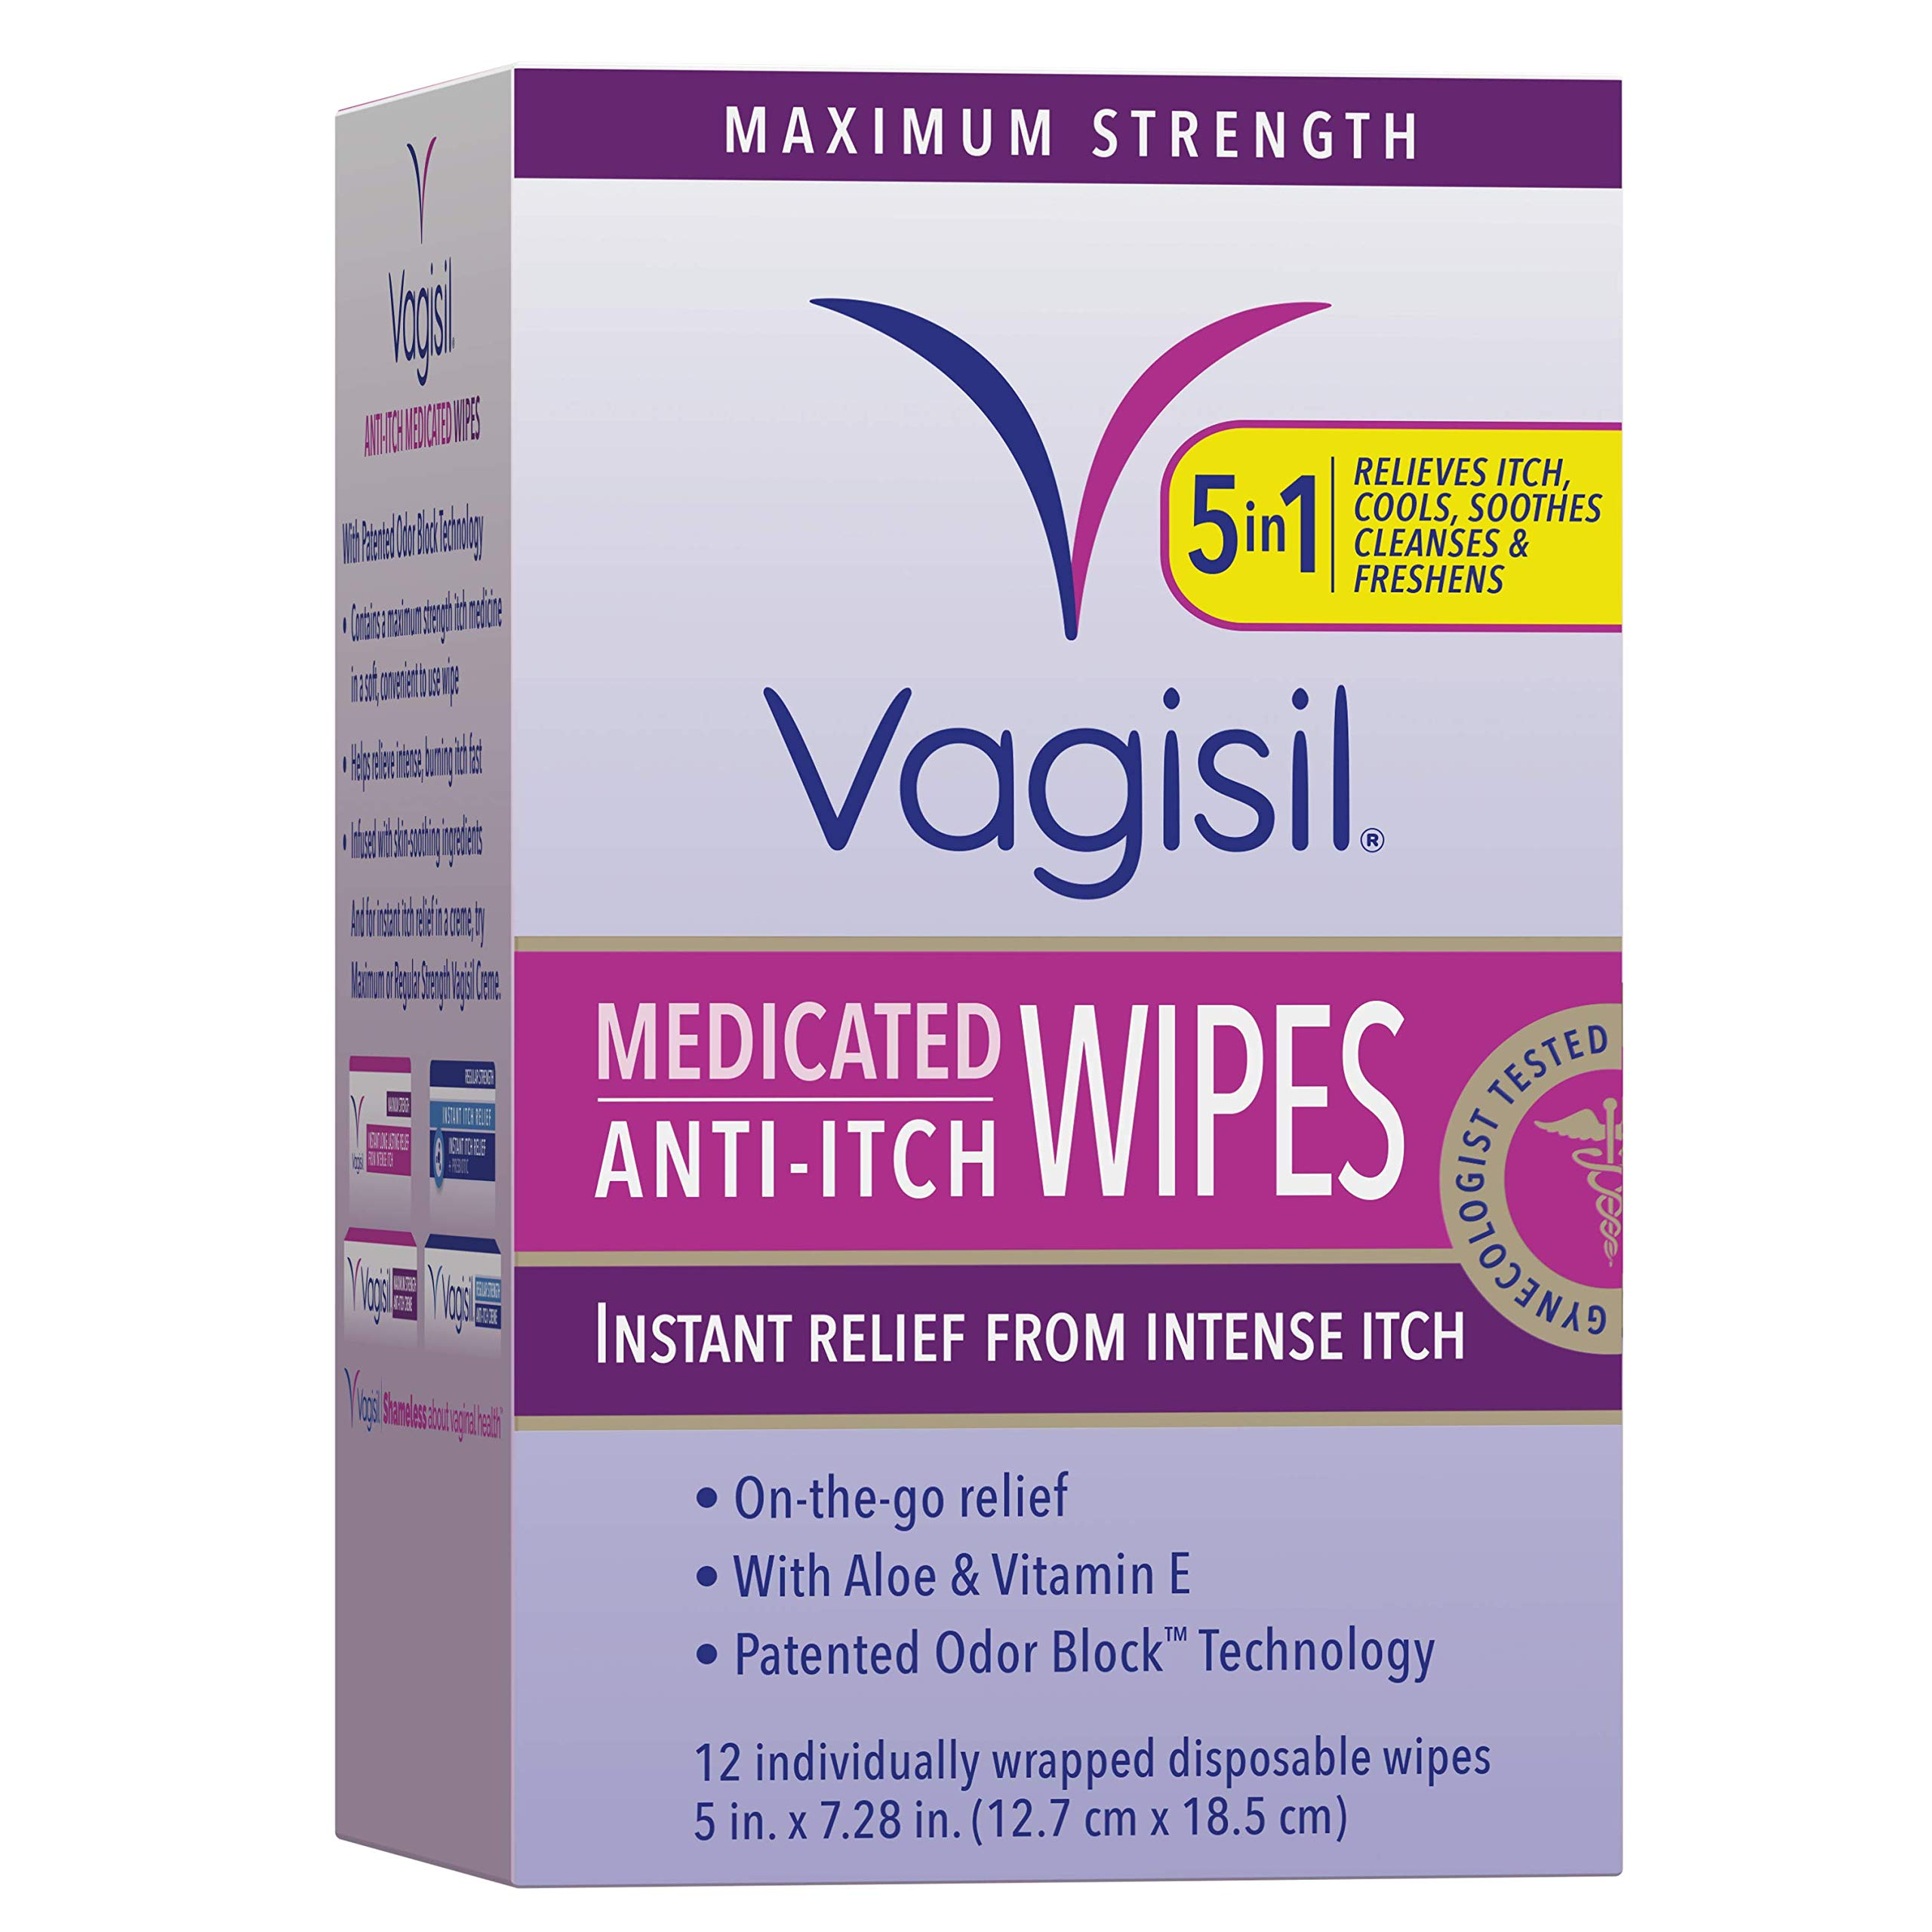 Vagisil Anti-Itch Medicated Feminine Wipes, Maximum Strength, 12 Individually Wrapped Disposable Wipes